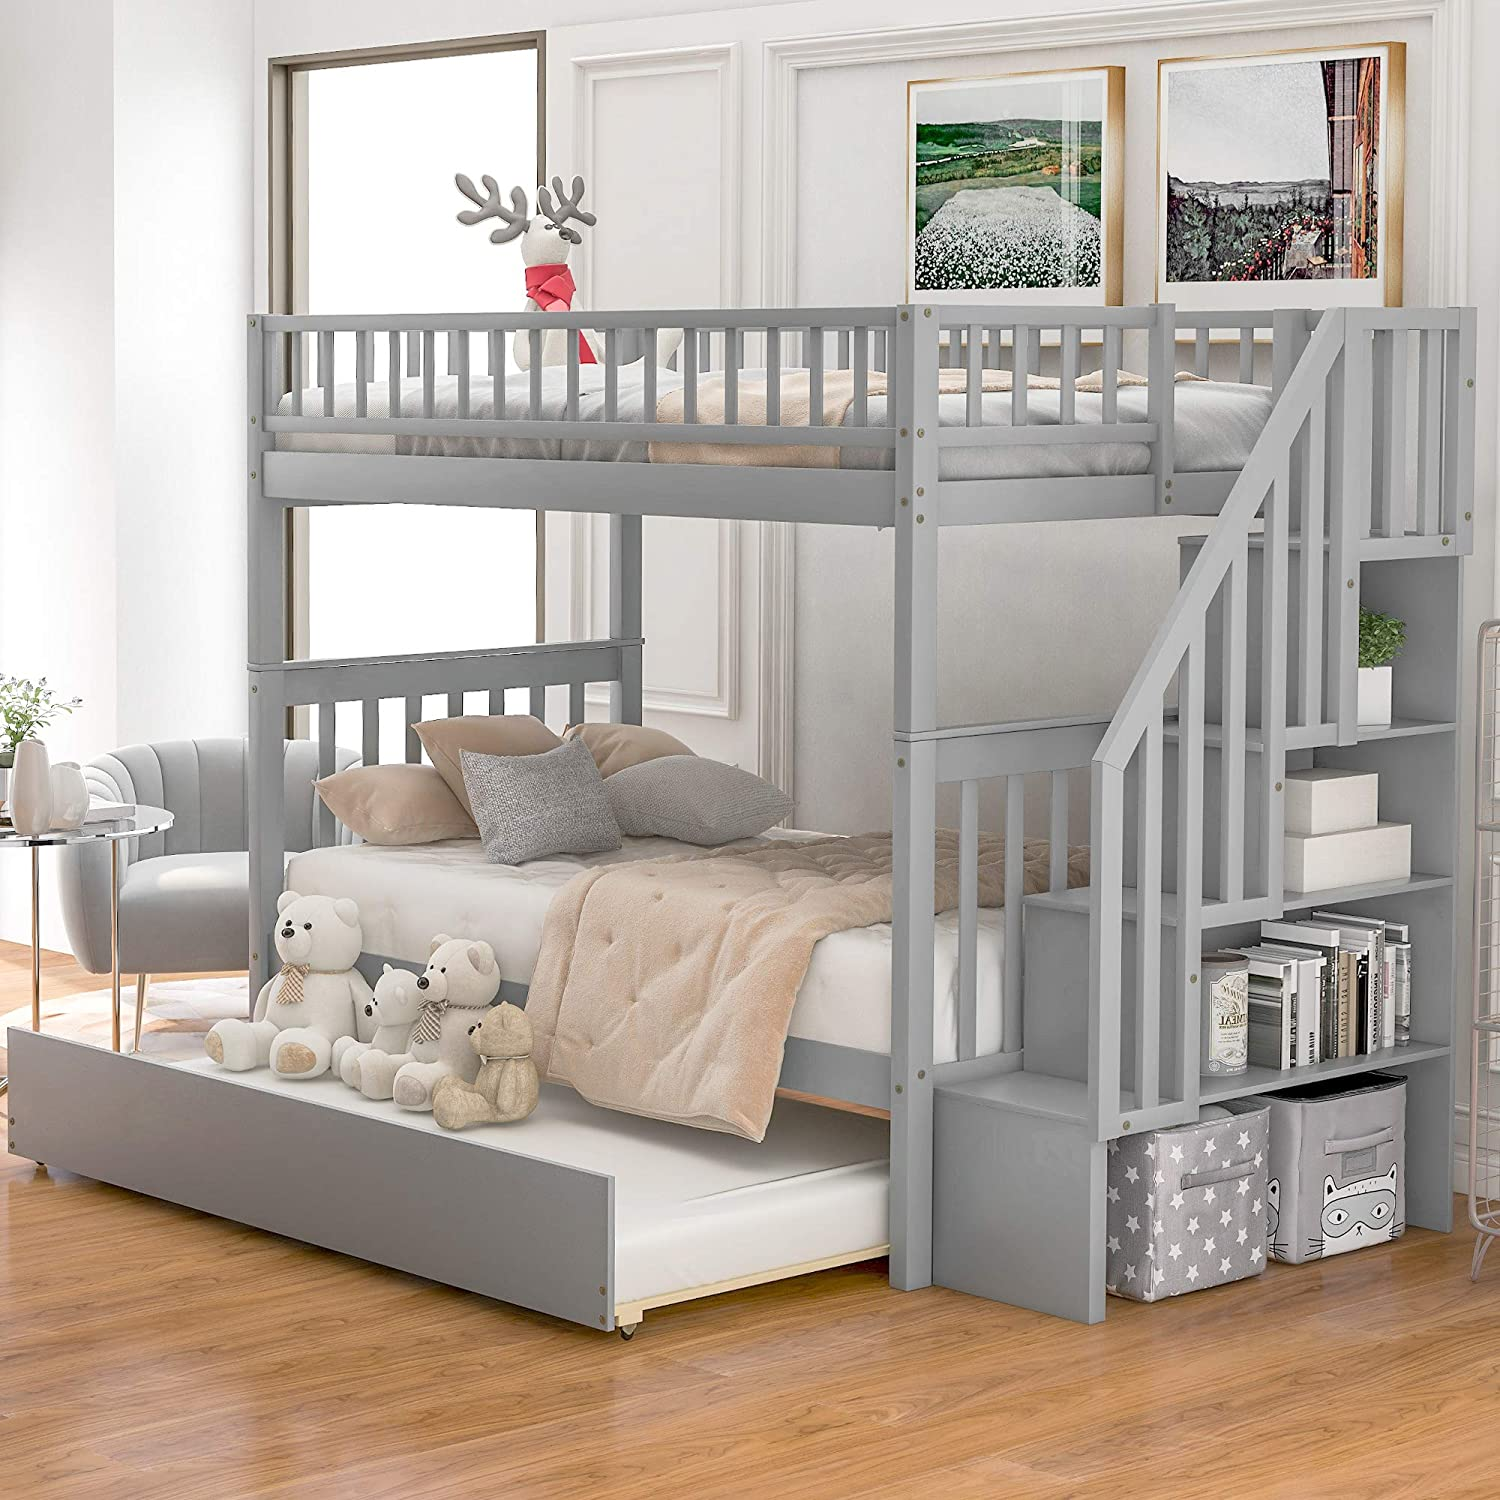 Twin Over Twin Bunk Bed With Trundle And Staircase Baysitone Wood Bunk Bed Frame With 4 Storages And Guardrails Can Be Separated Into 3 Beds No Box Spring Needed Grey Kitchen